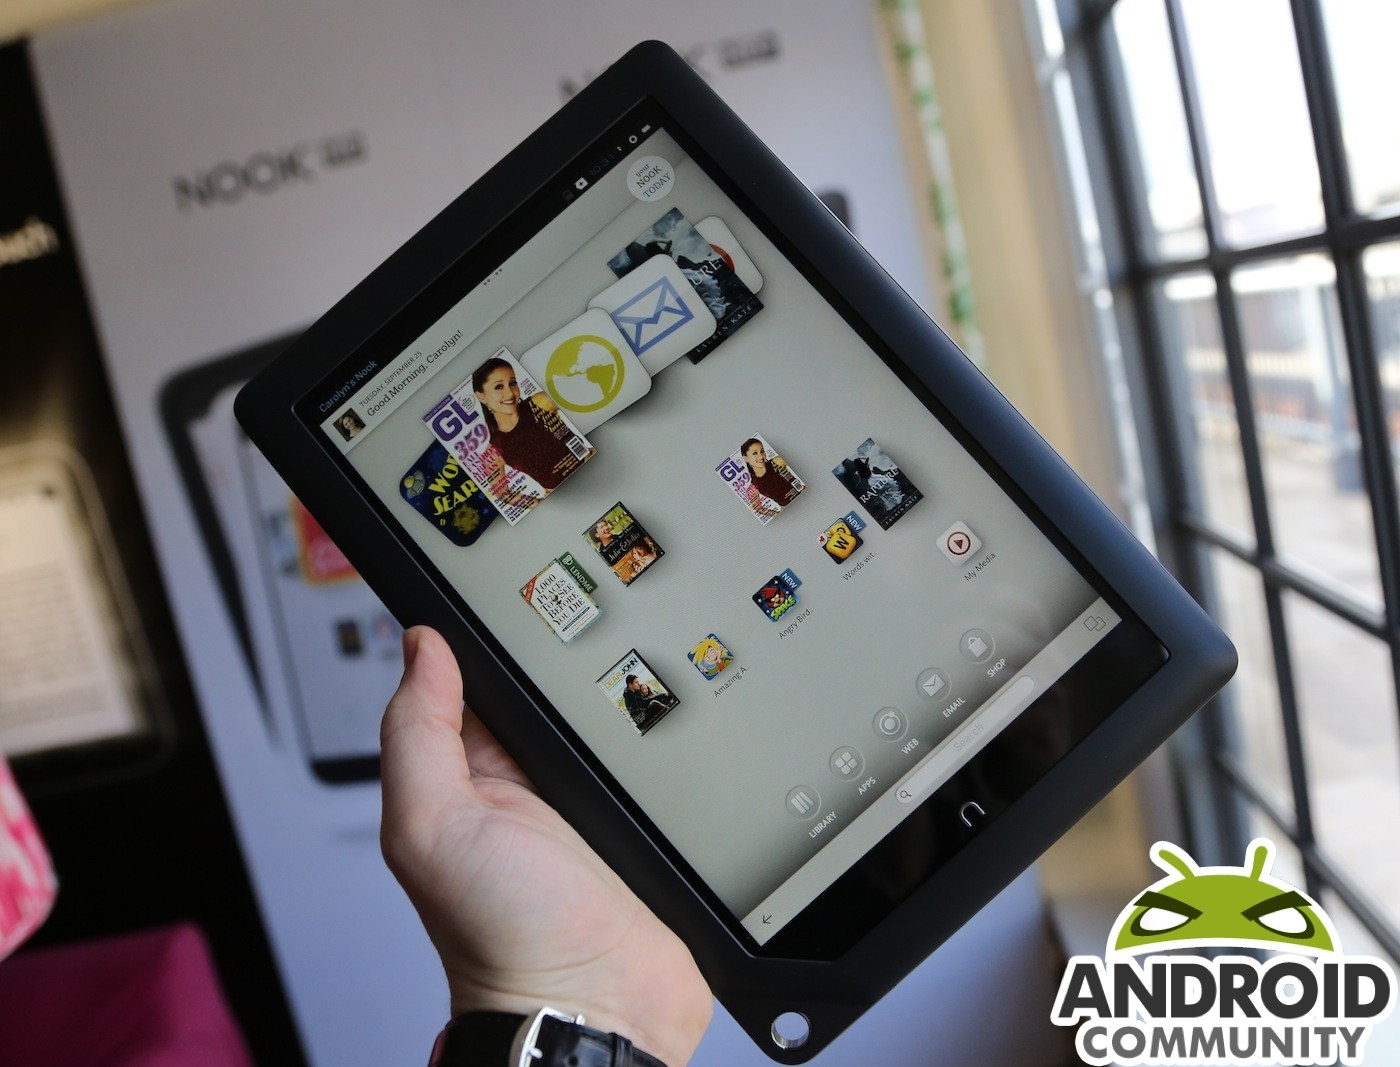 bn-nook-hd-e-bn-nook-hd-androidcommunity-1